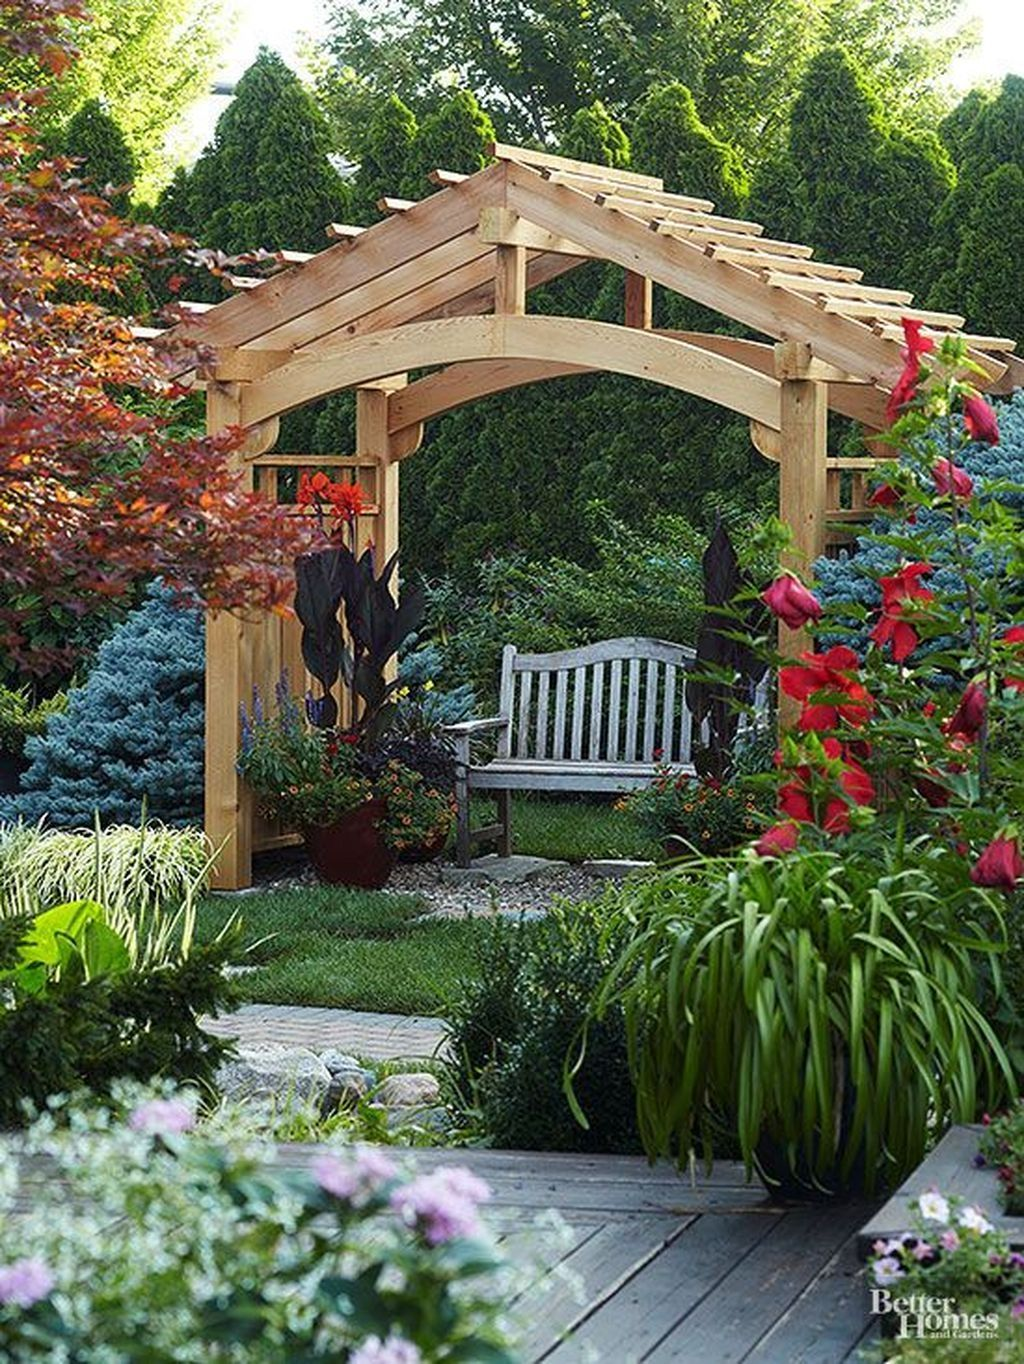 44 awesome pergola trellis ideas for your front yard on stunning backyard lighting design decor and remodel ideas sources to understand id=26004